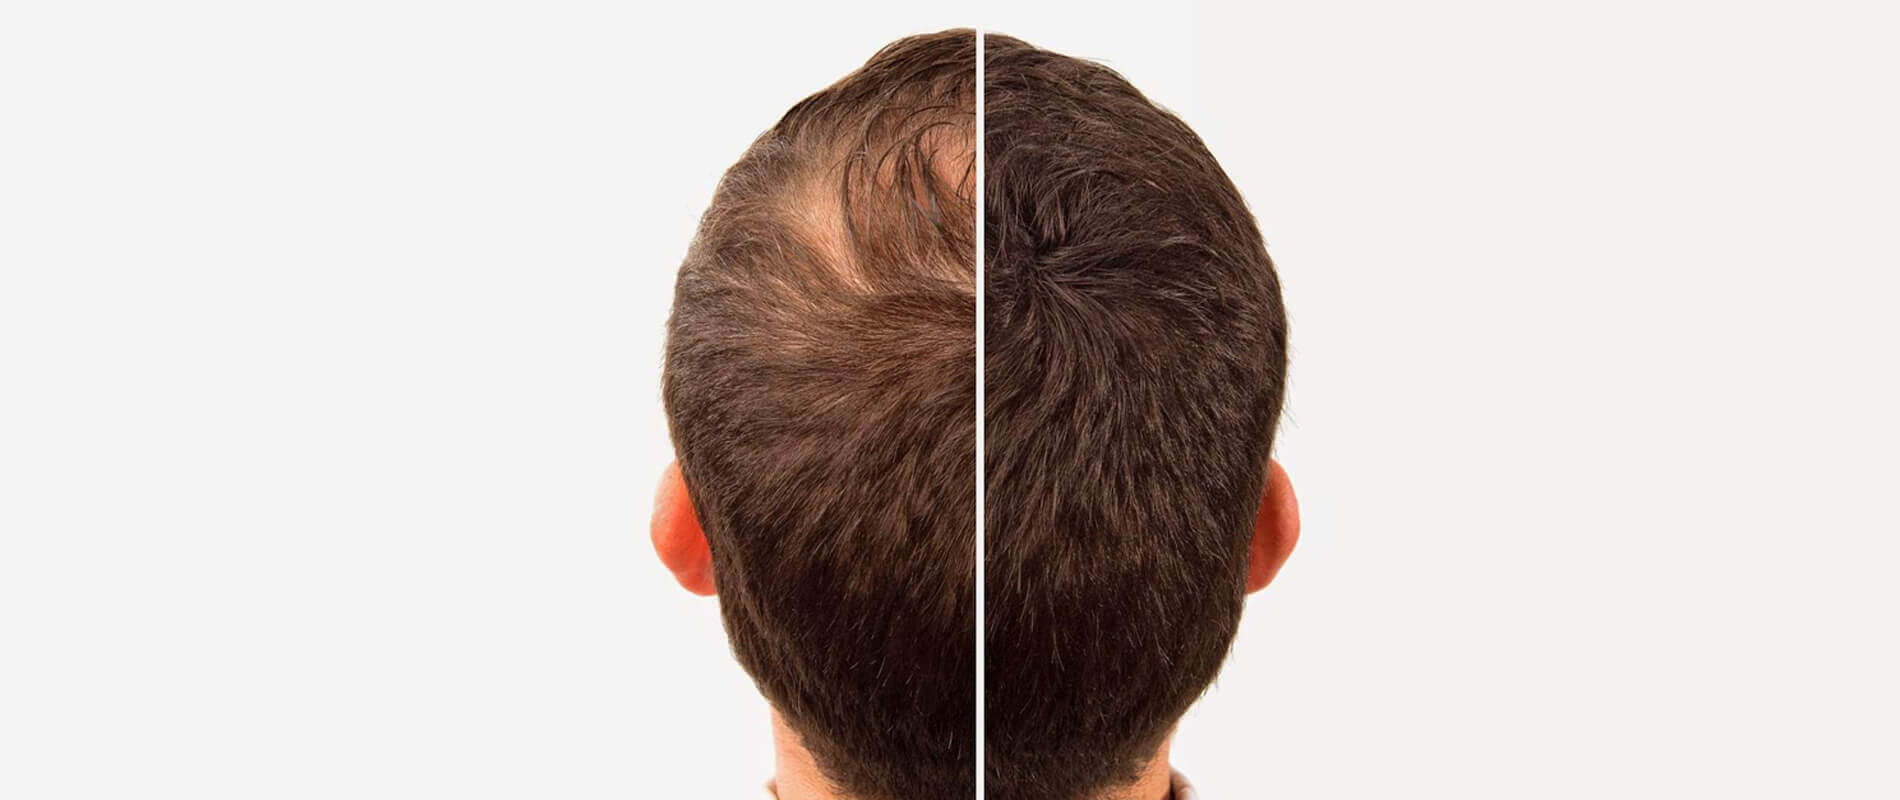 Hair transplantation clinic in hyderabad